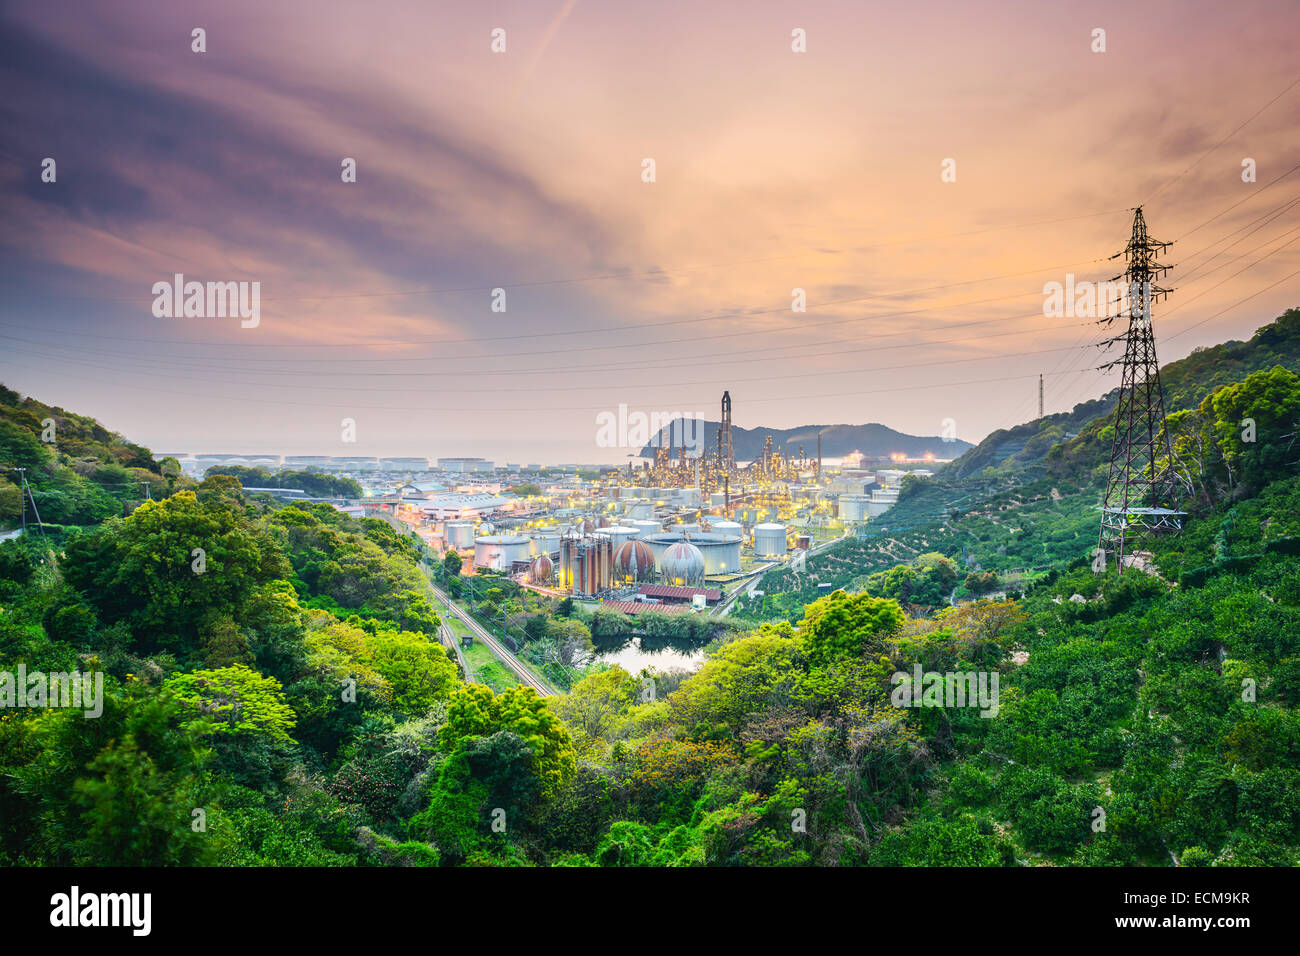 Wakayama, Japan oil refineries. - Stock Image